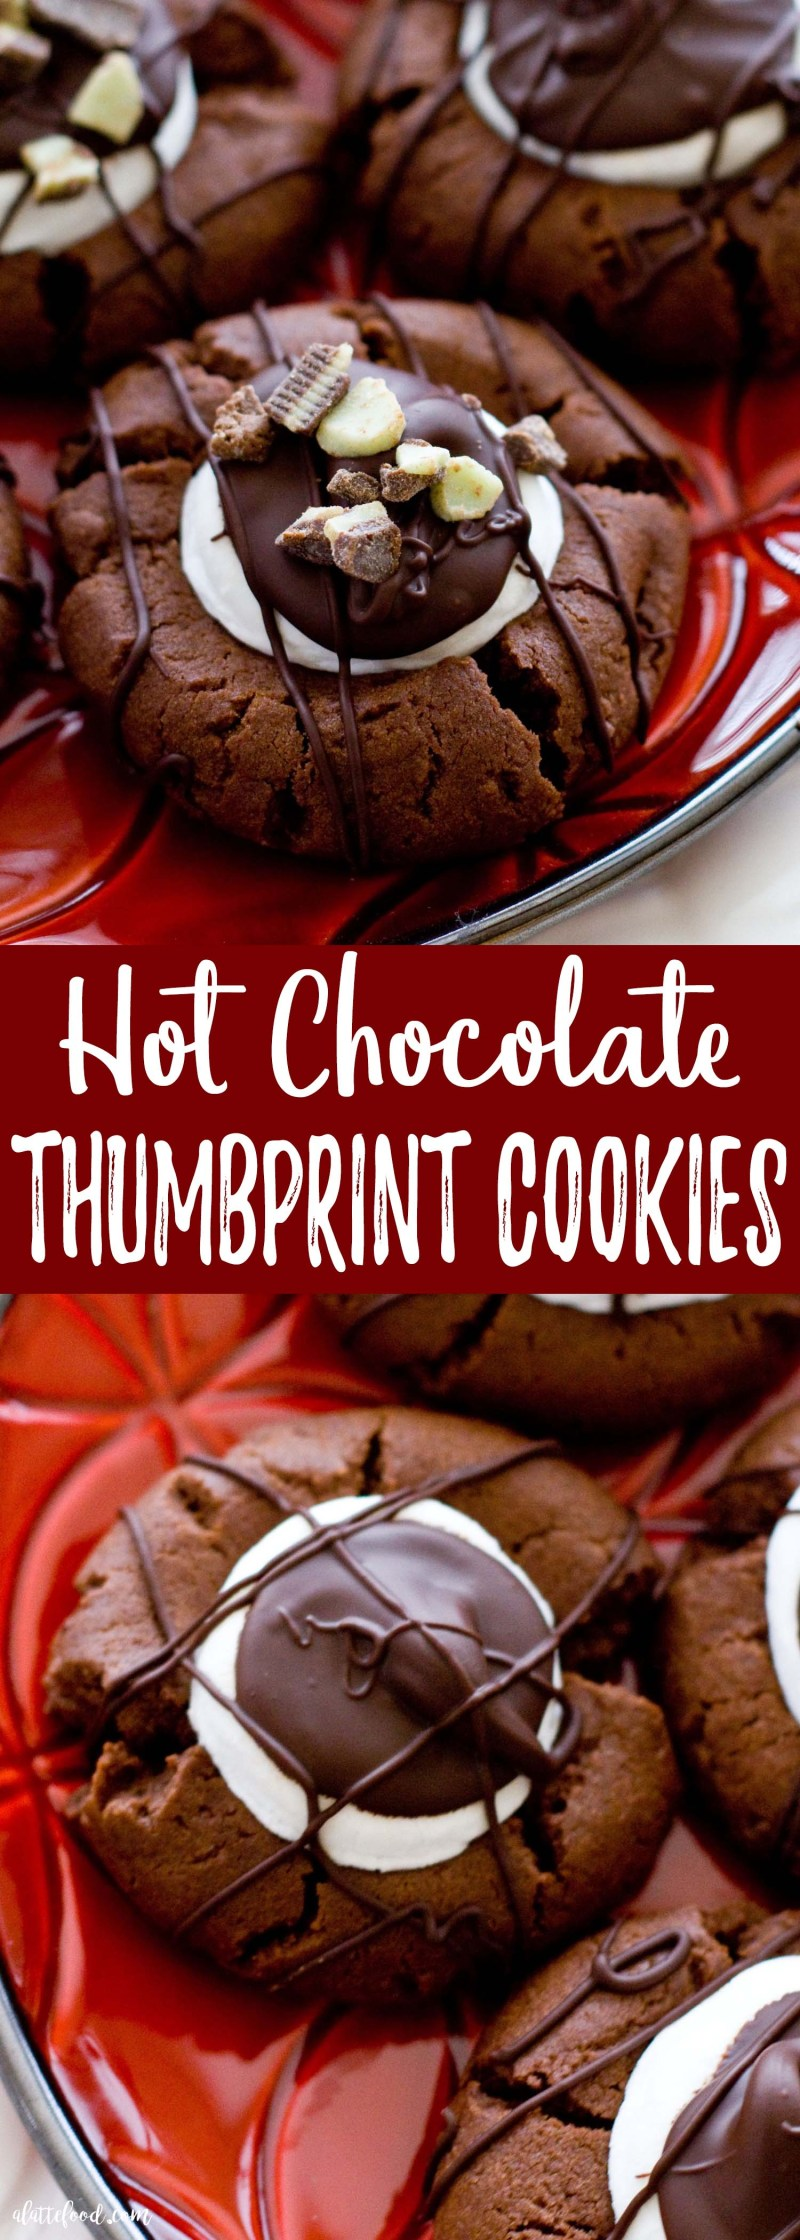 These Hot Chocolate Thumbprint Cookies taste like homemade hot chocolate in the form of a chewy chocolate cookie! They're intensely chocolatey, have a gooey marshmallow center, and covered in drizzled chocolate. Perfect.